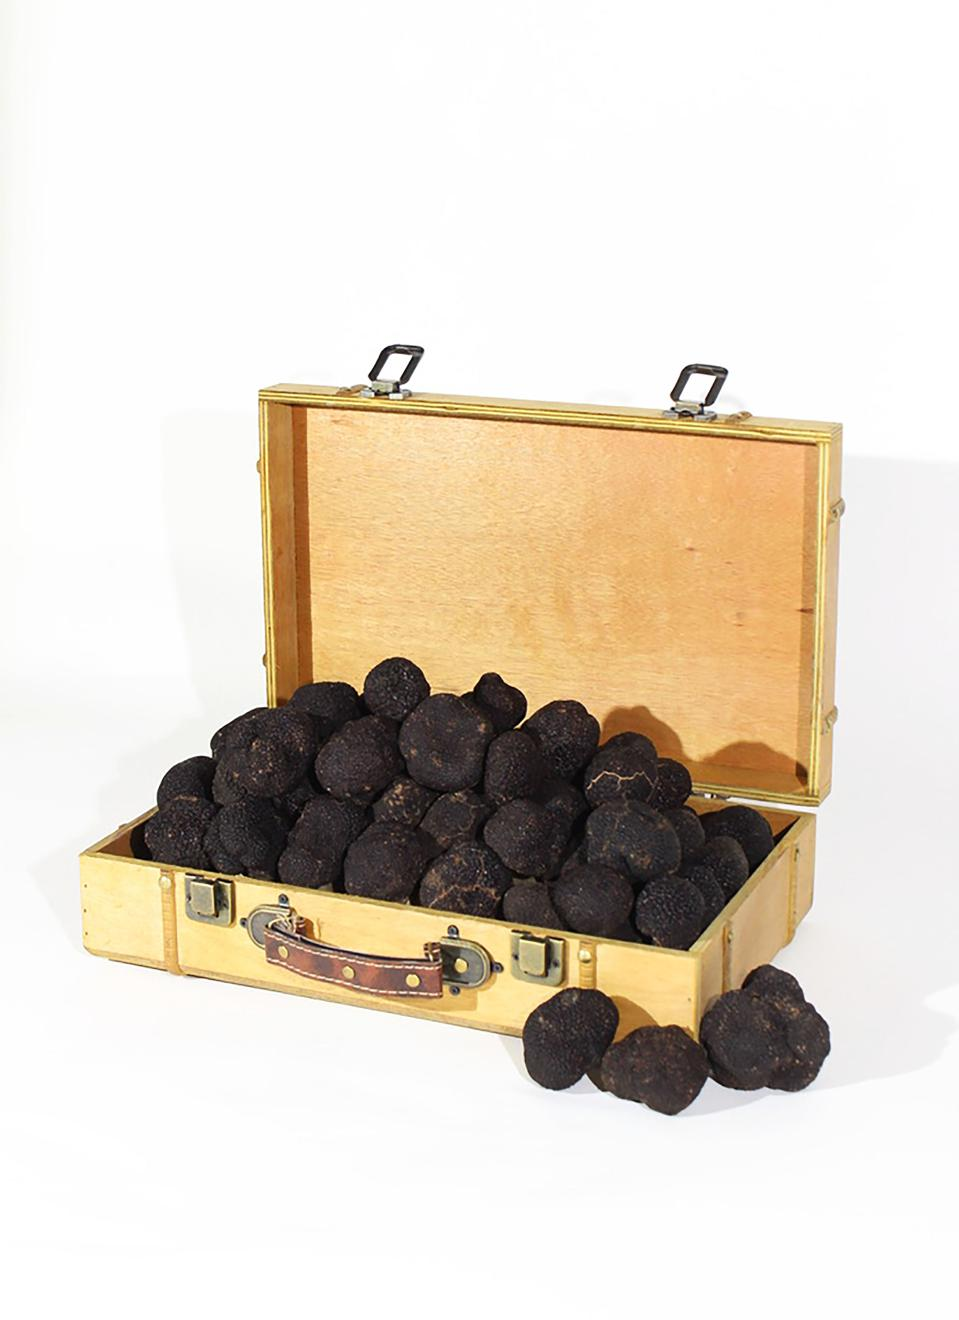 A golden suitcase filled with black truffles